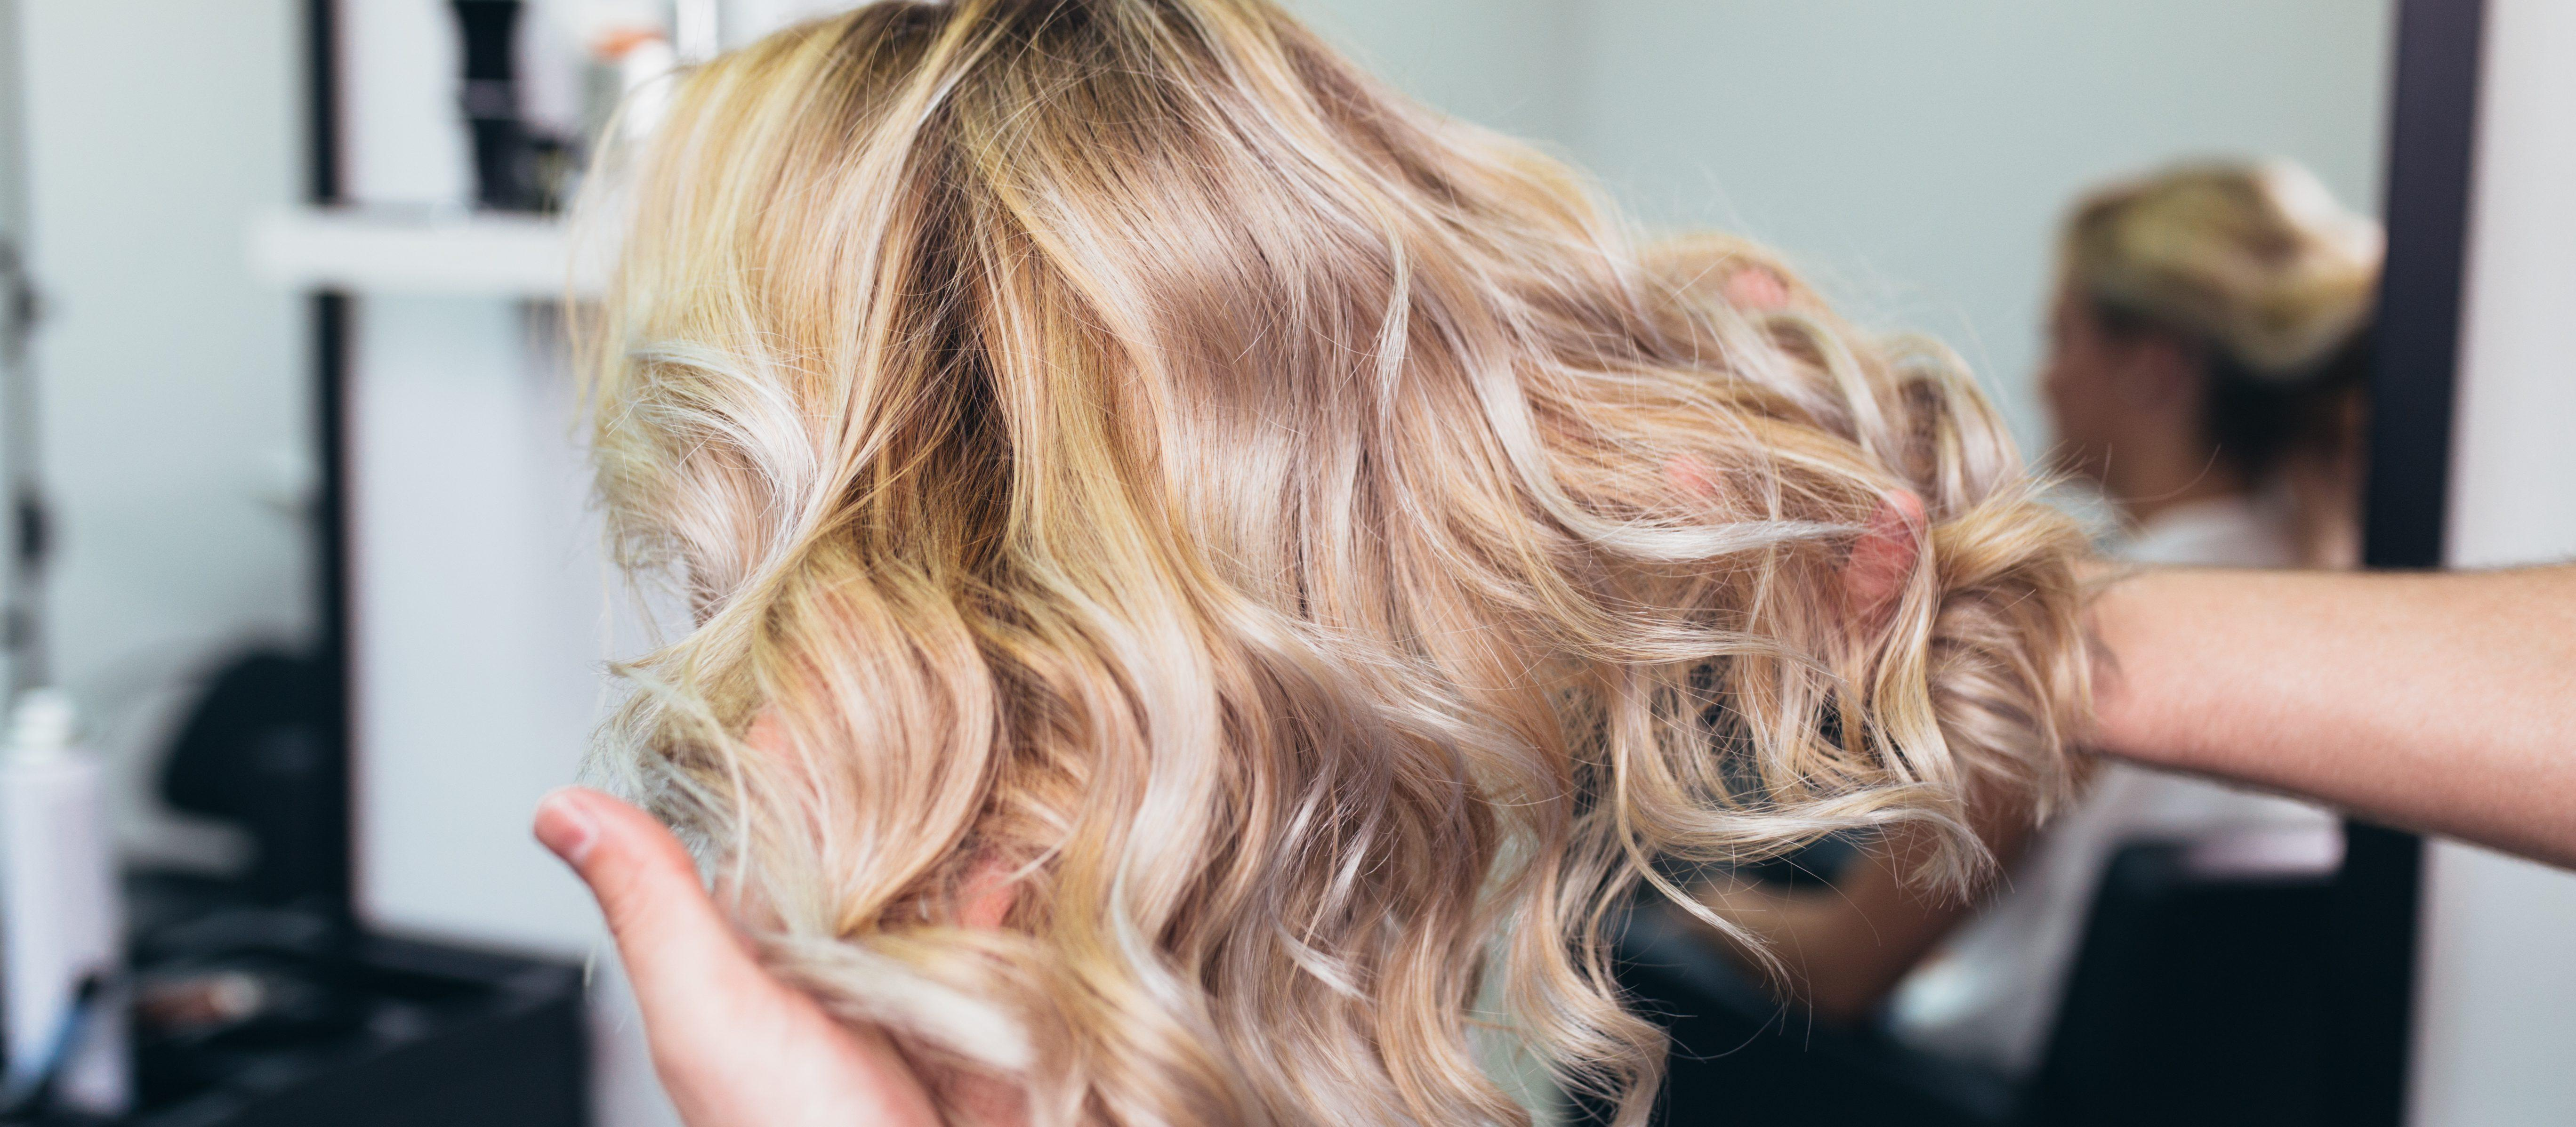 Changing Your Hair Color from Dark to Light or Going Blond? Go Slow and Steady